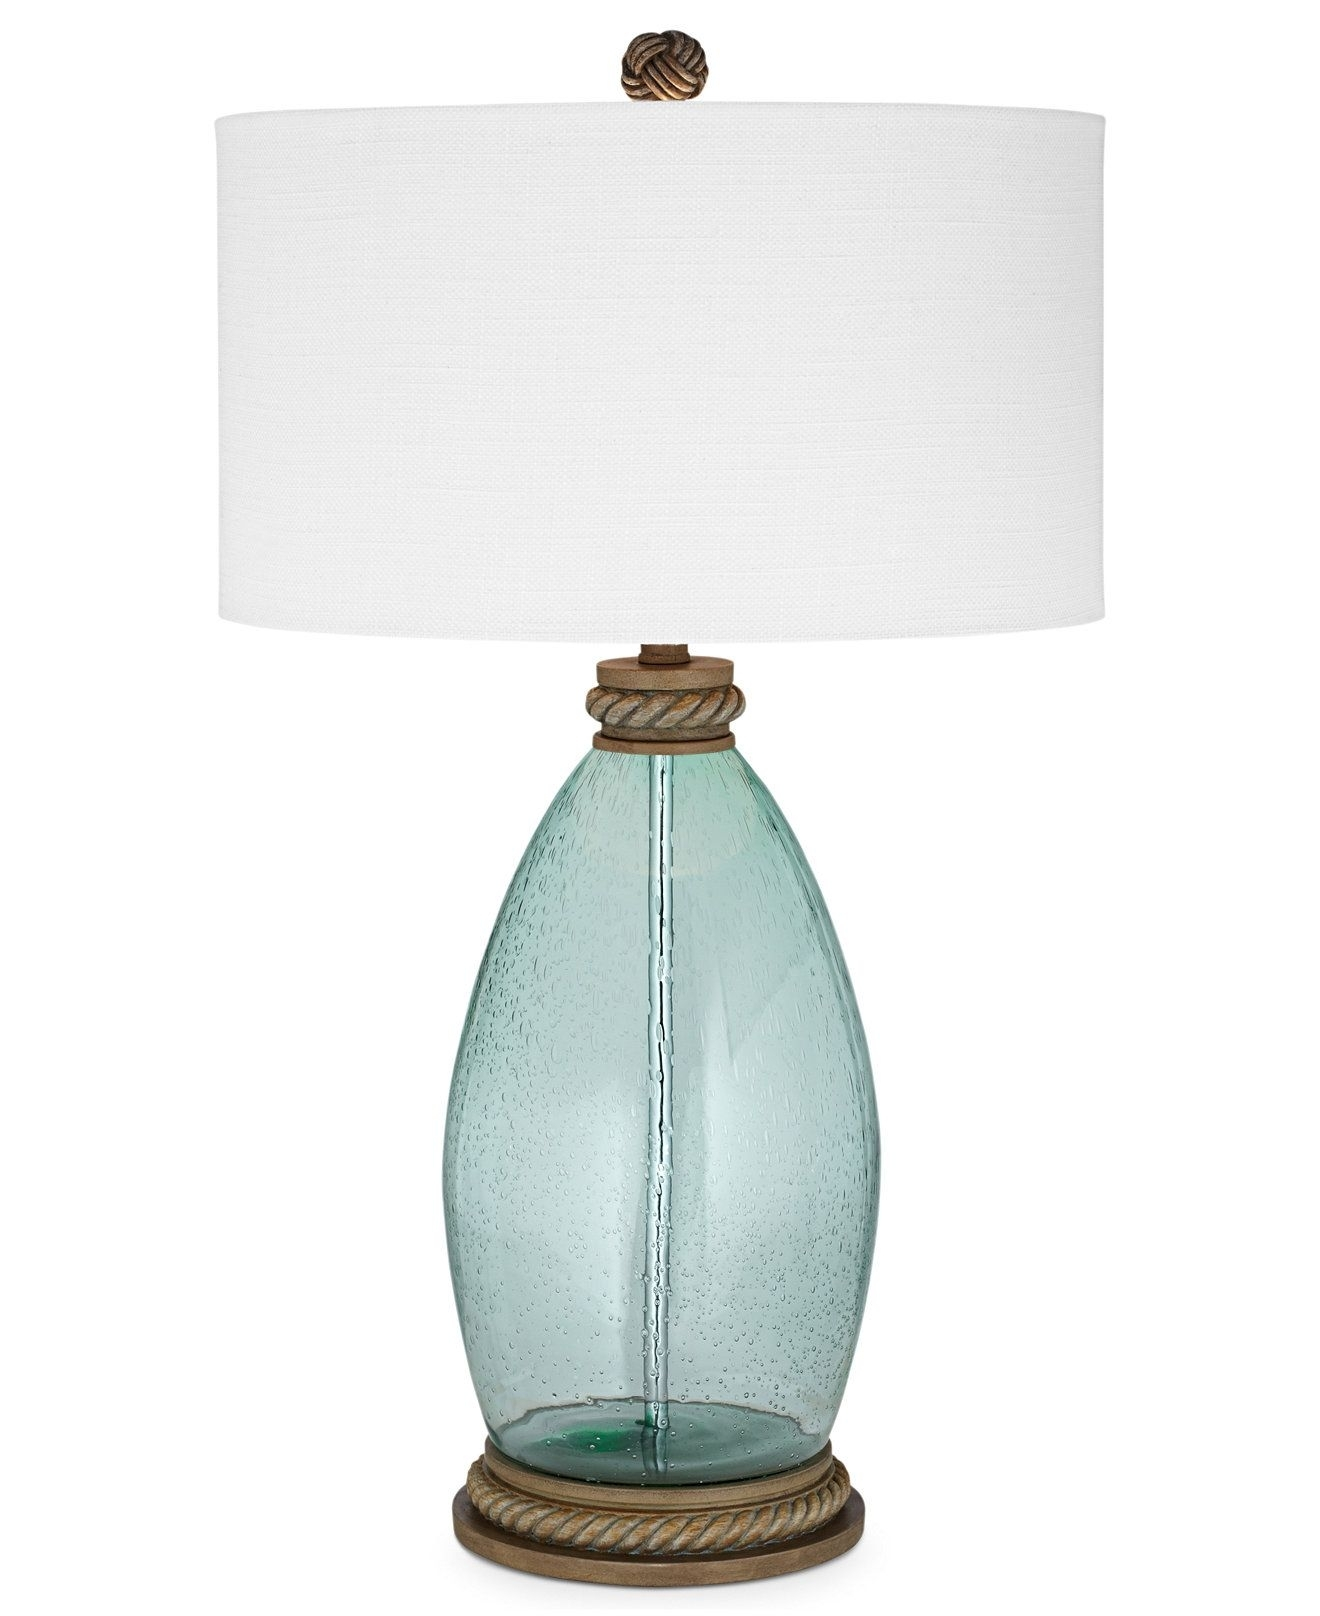 Inspiration about Pacific Coast Blue Lagoon Table Lamp   Coastal, Living Rooms And Room Inside Coastal Living Room Table Lamps (#14 of 15)